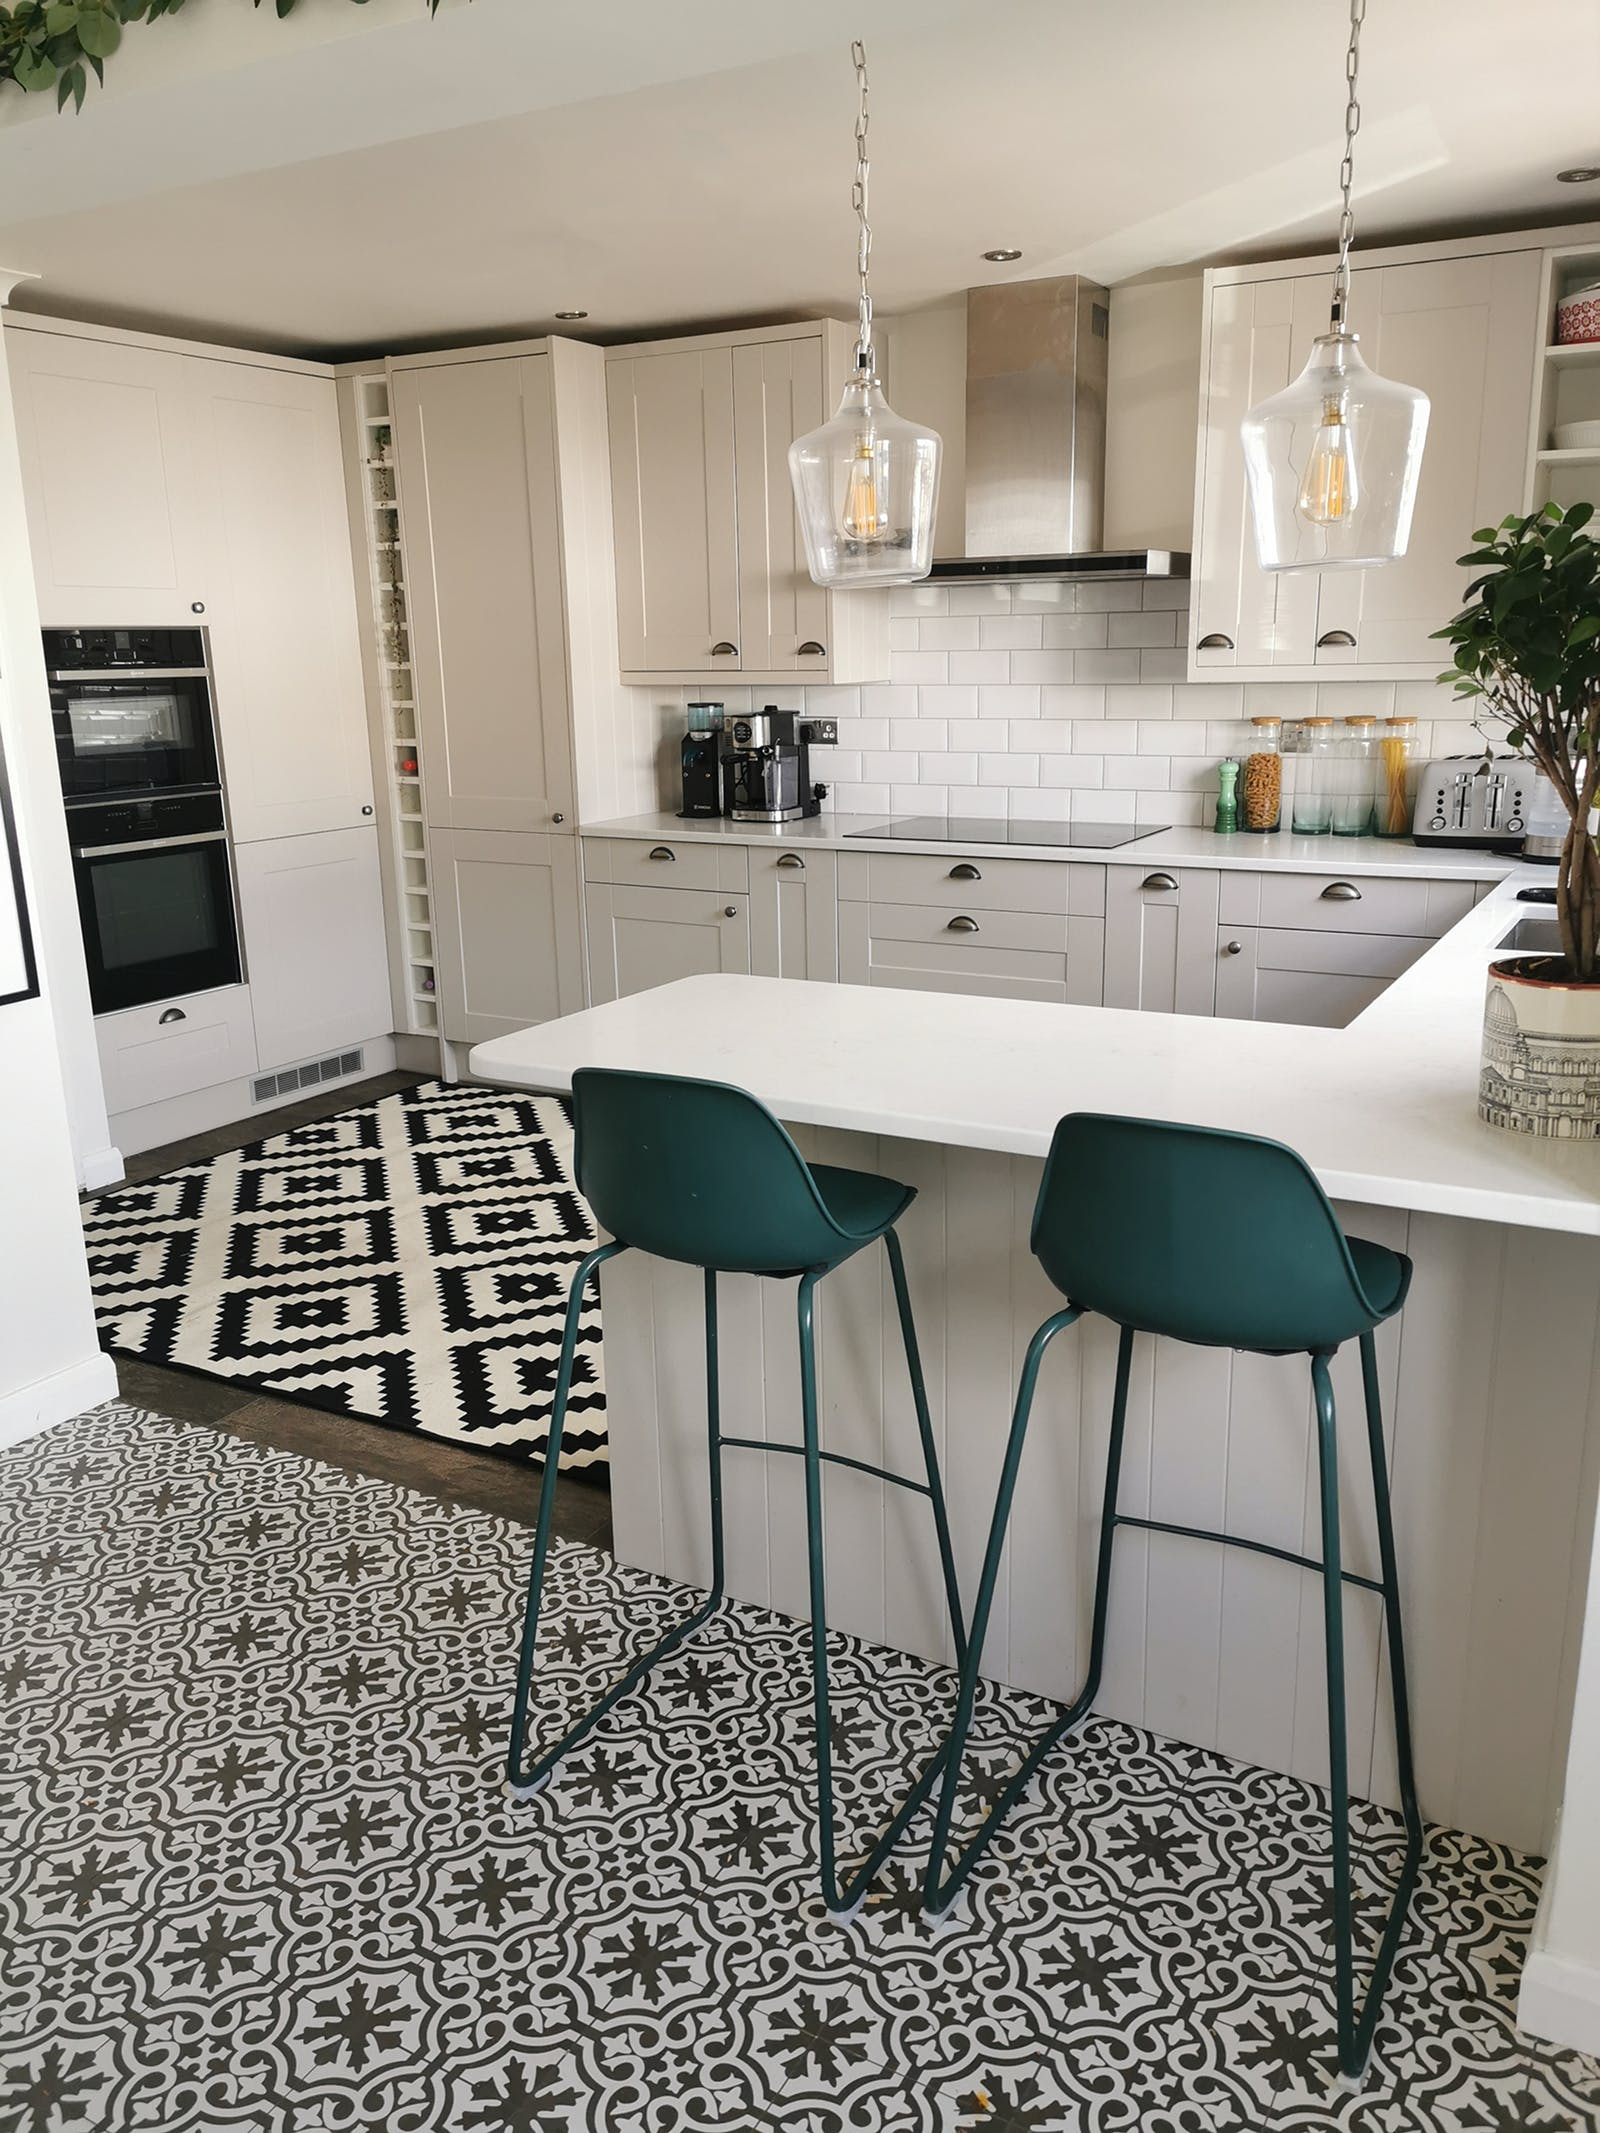 kitchen area with tall chairs and different patterned rugs